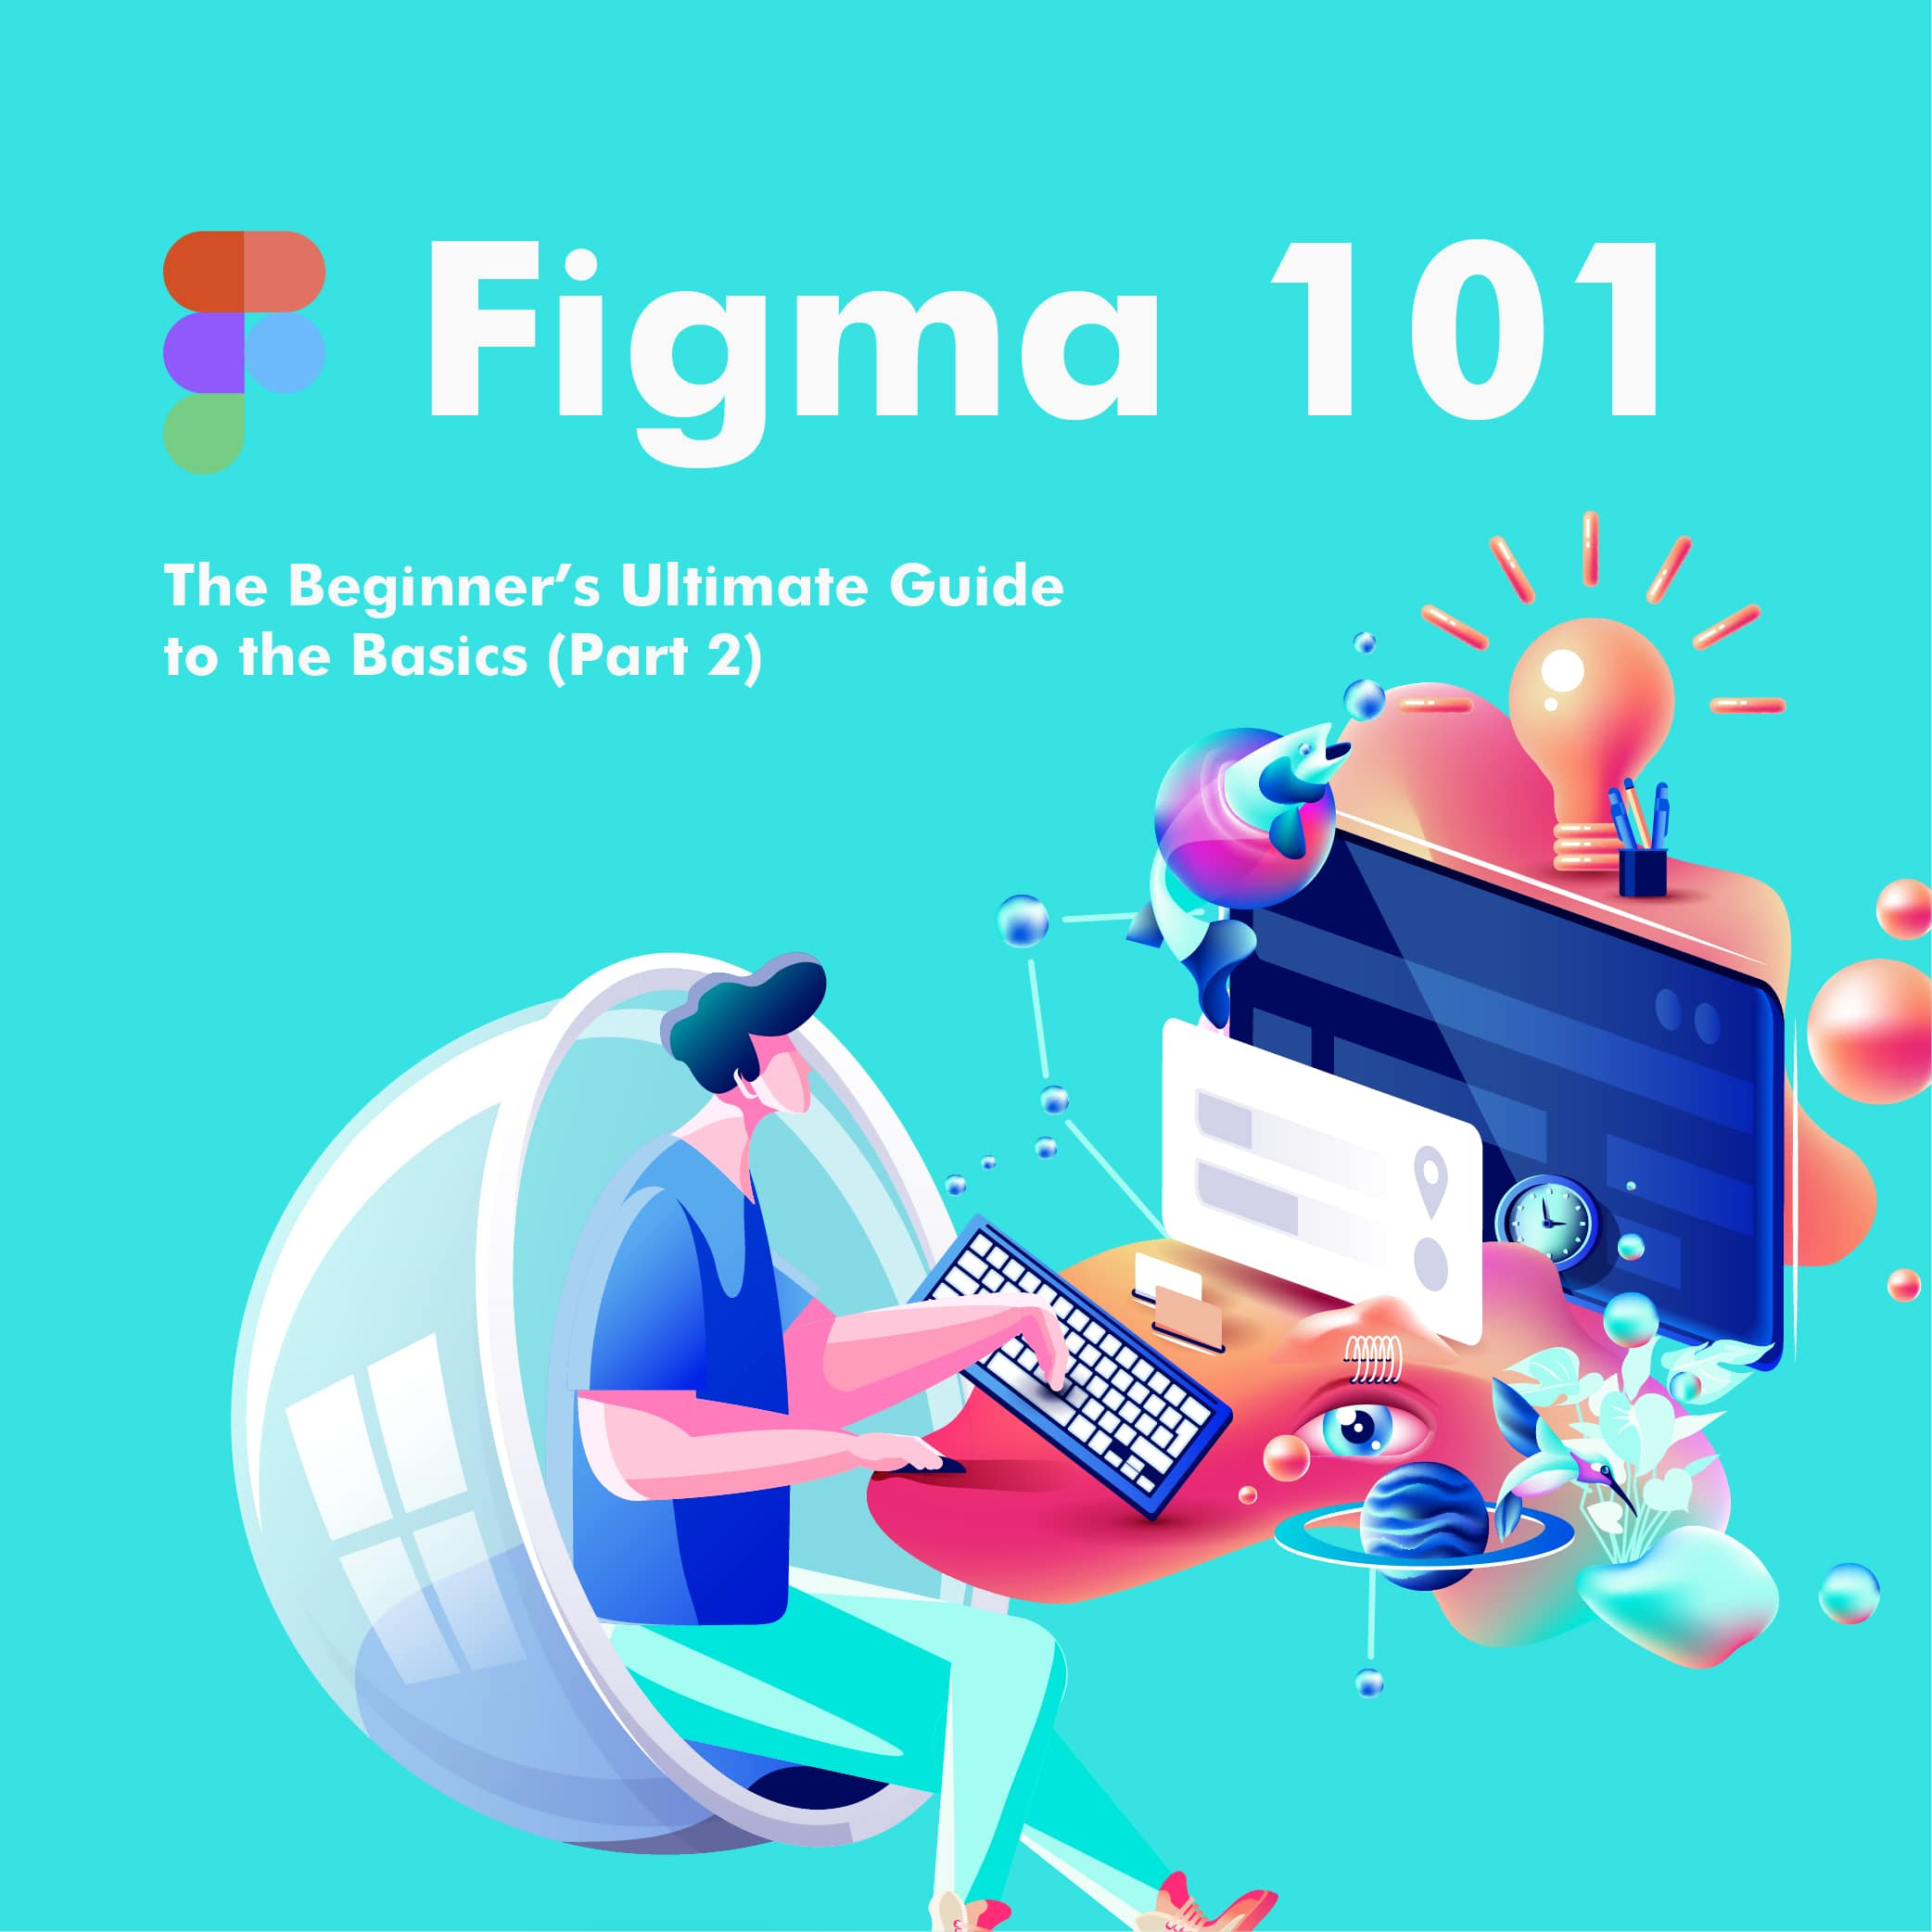 Figma 101 – The Beginner's Ultimate Guide to the Basics (Part 2)